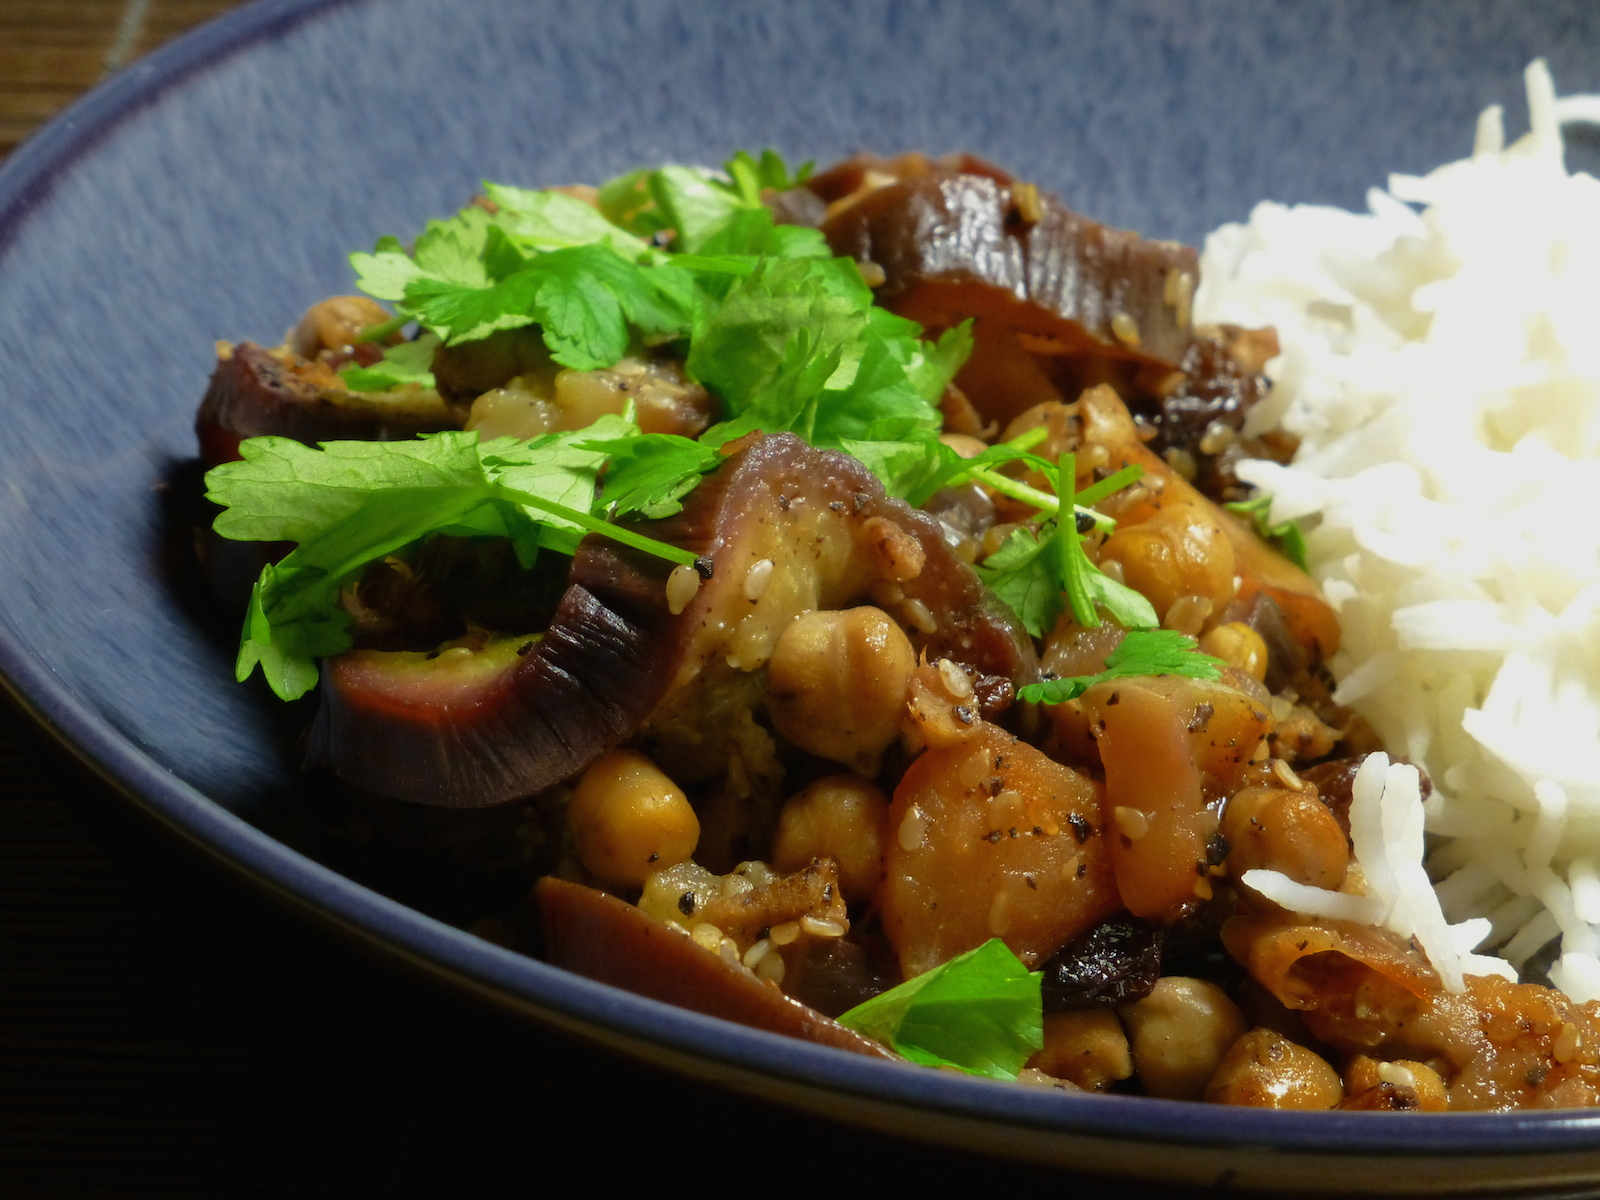 Aubergines, apples and chickpeas, served with rice